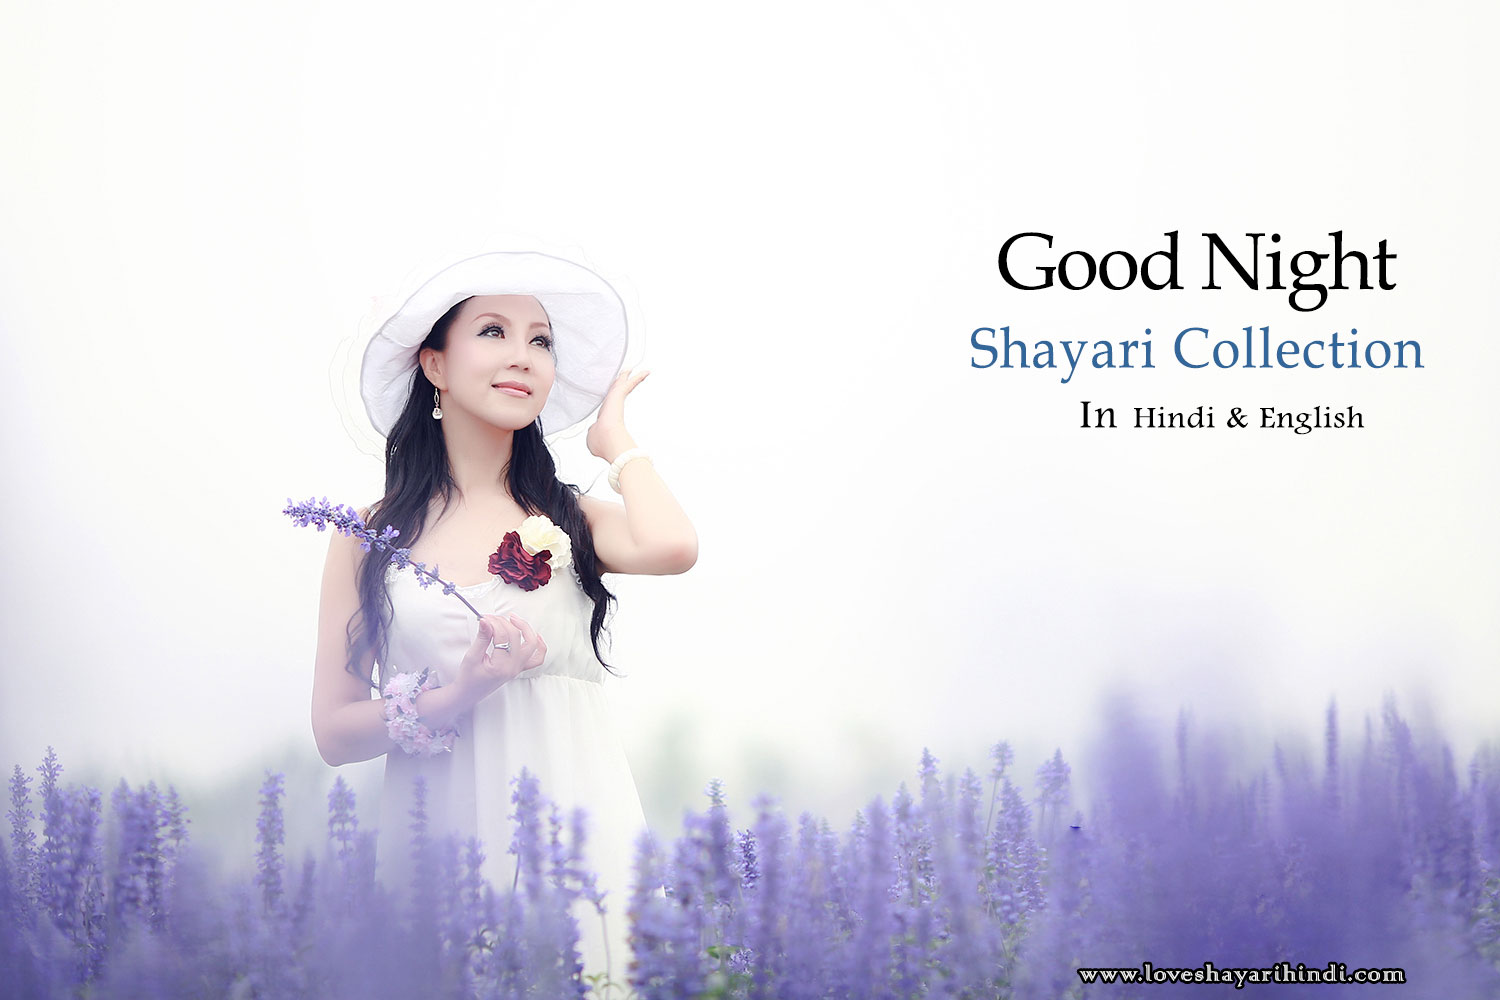 Best Good Night Shayari in Hindi and English